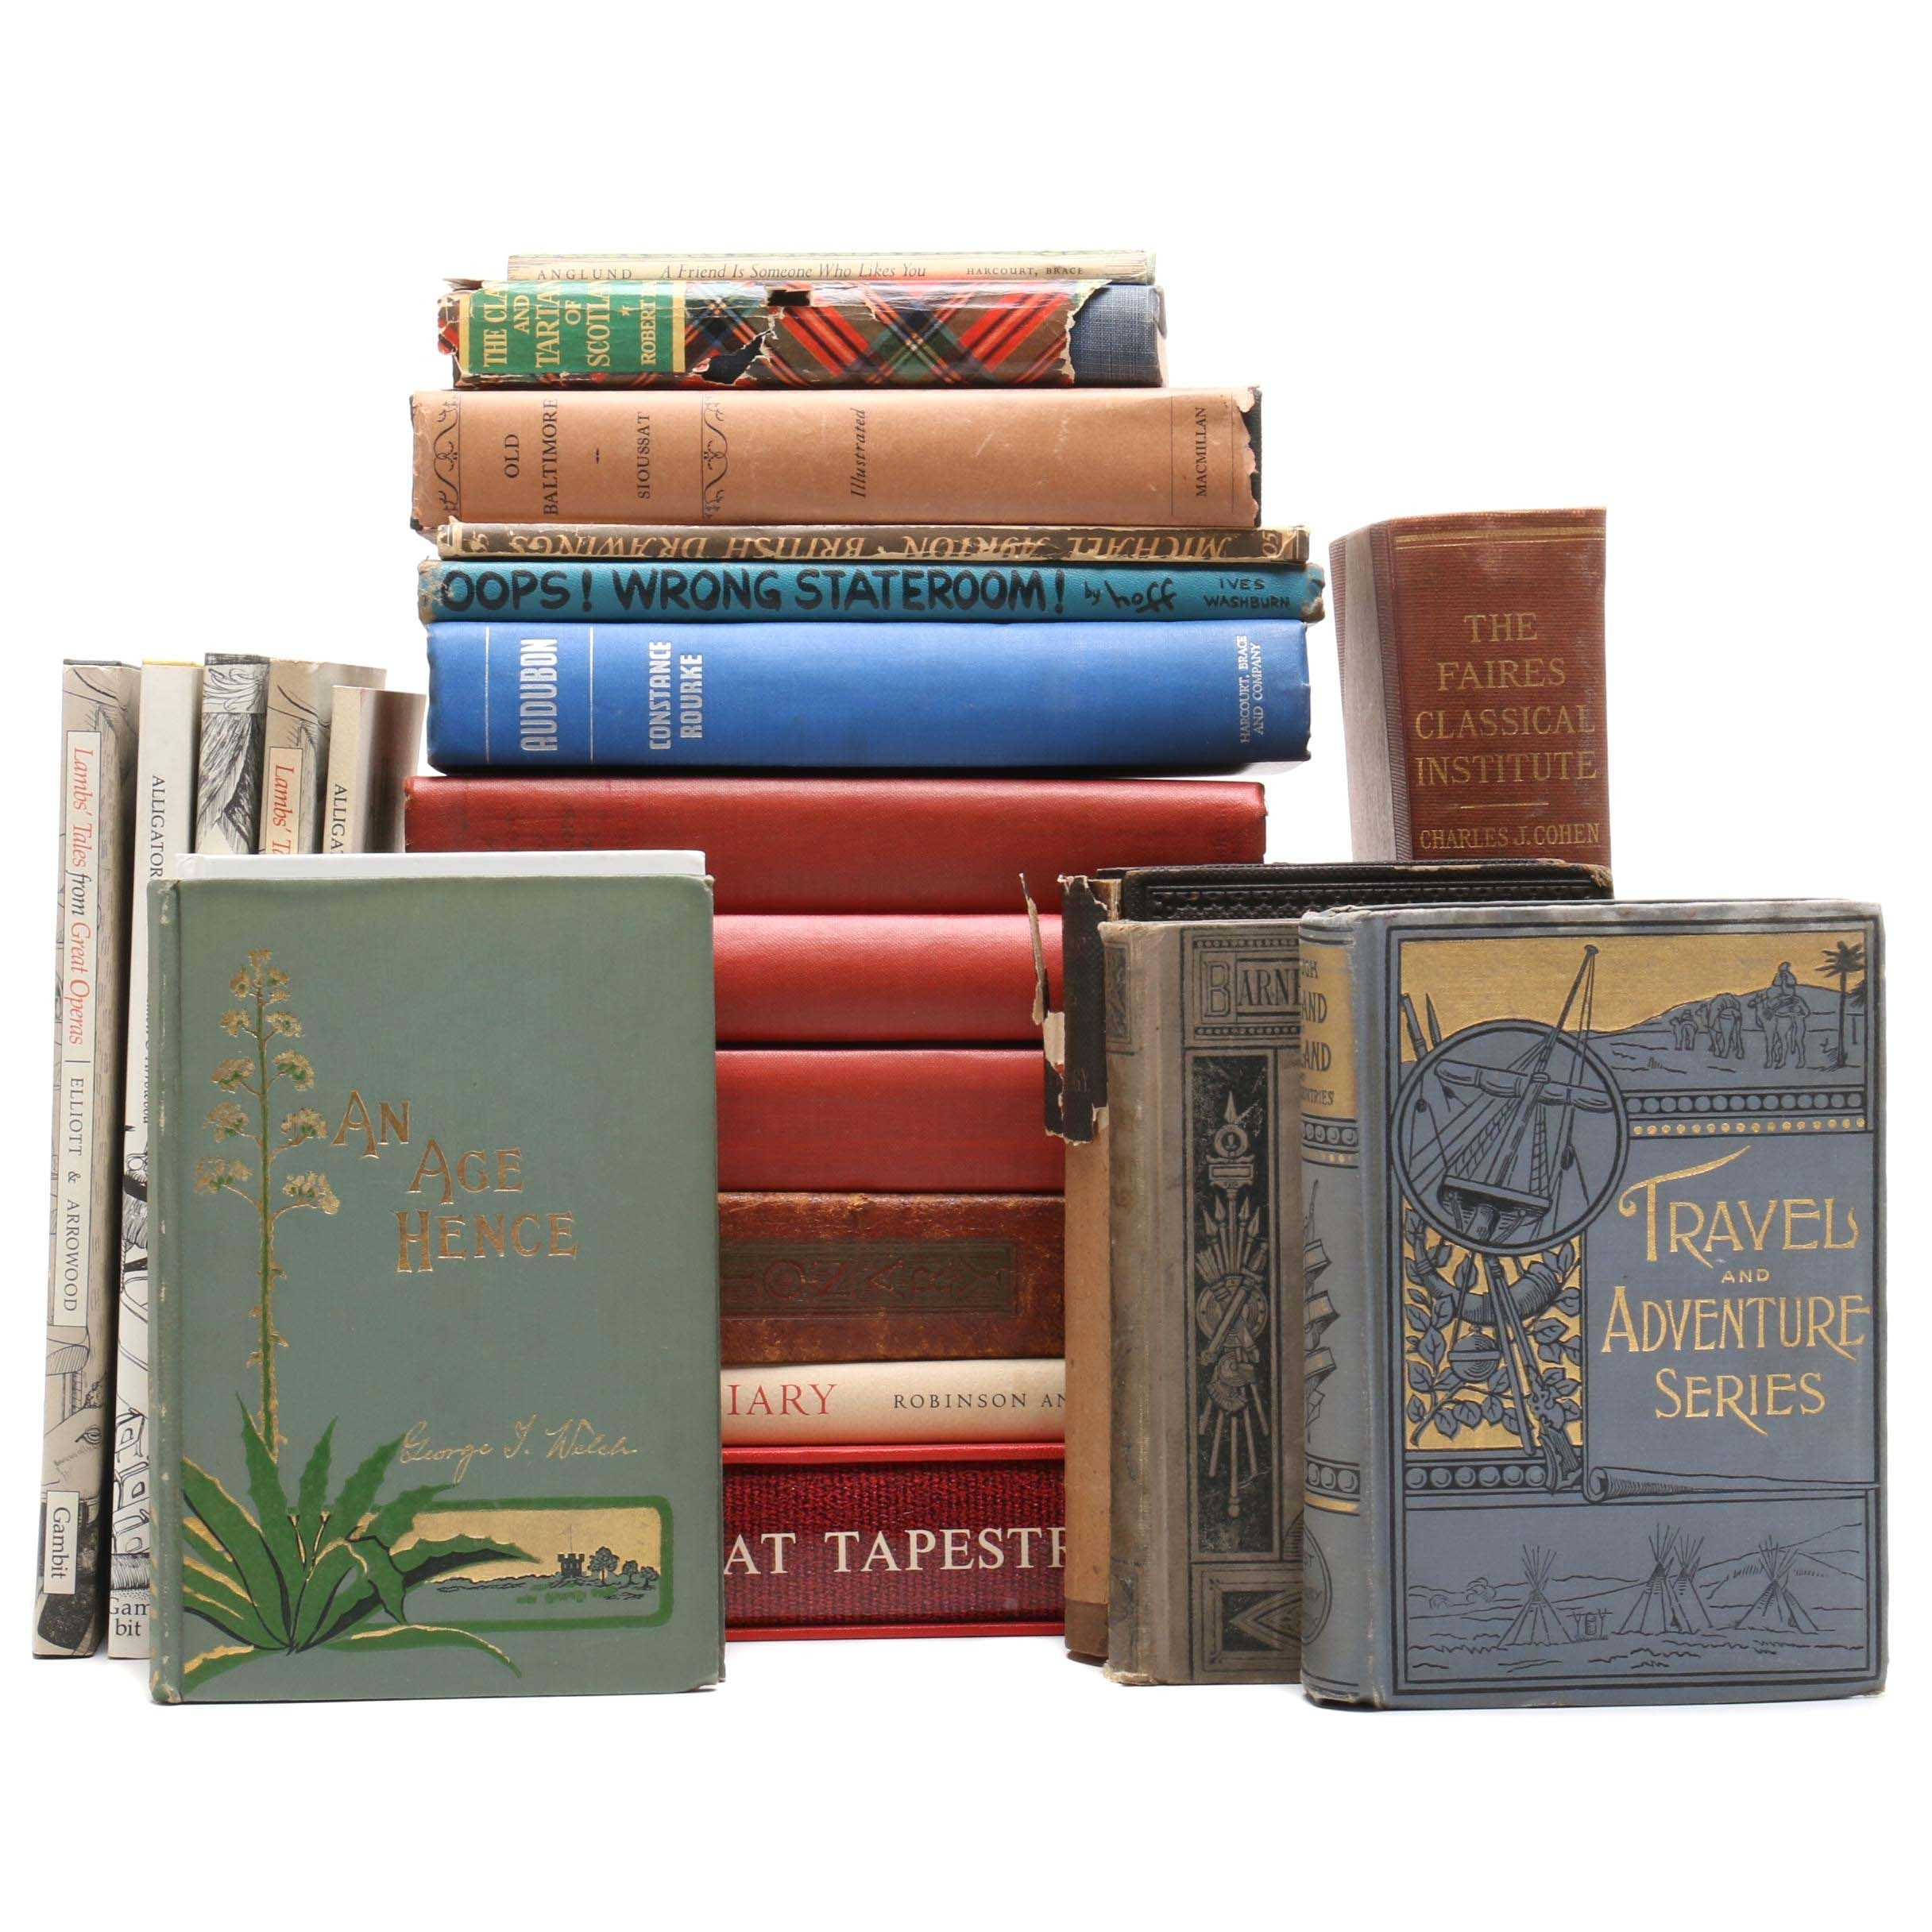 Antique and Vintage Nonfiction Books including First Editions